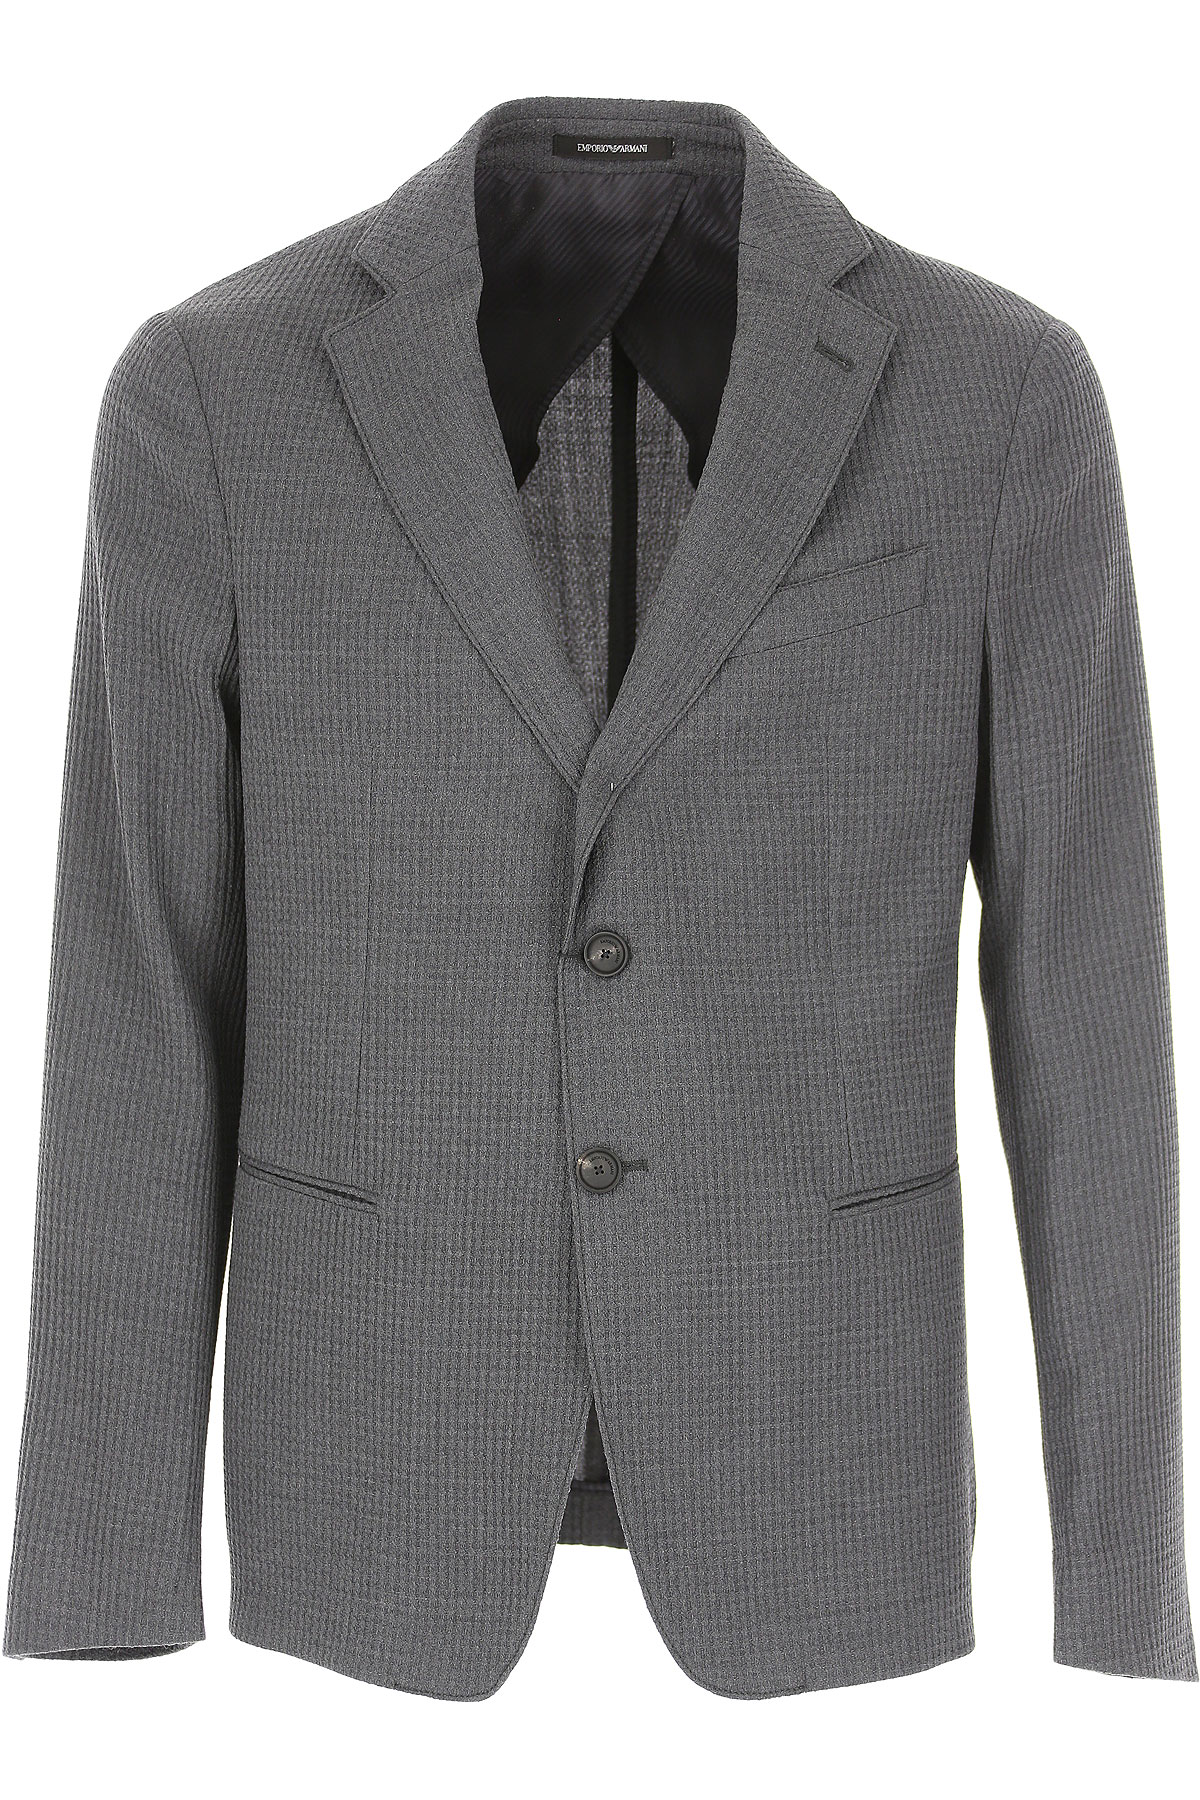 Emporio Armani Blazer for Men, Sport Coat, Dark Anthracite Grey, Virgin wool, 2017, L M S XL XXL XXXL USA-466600